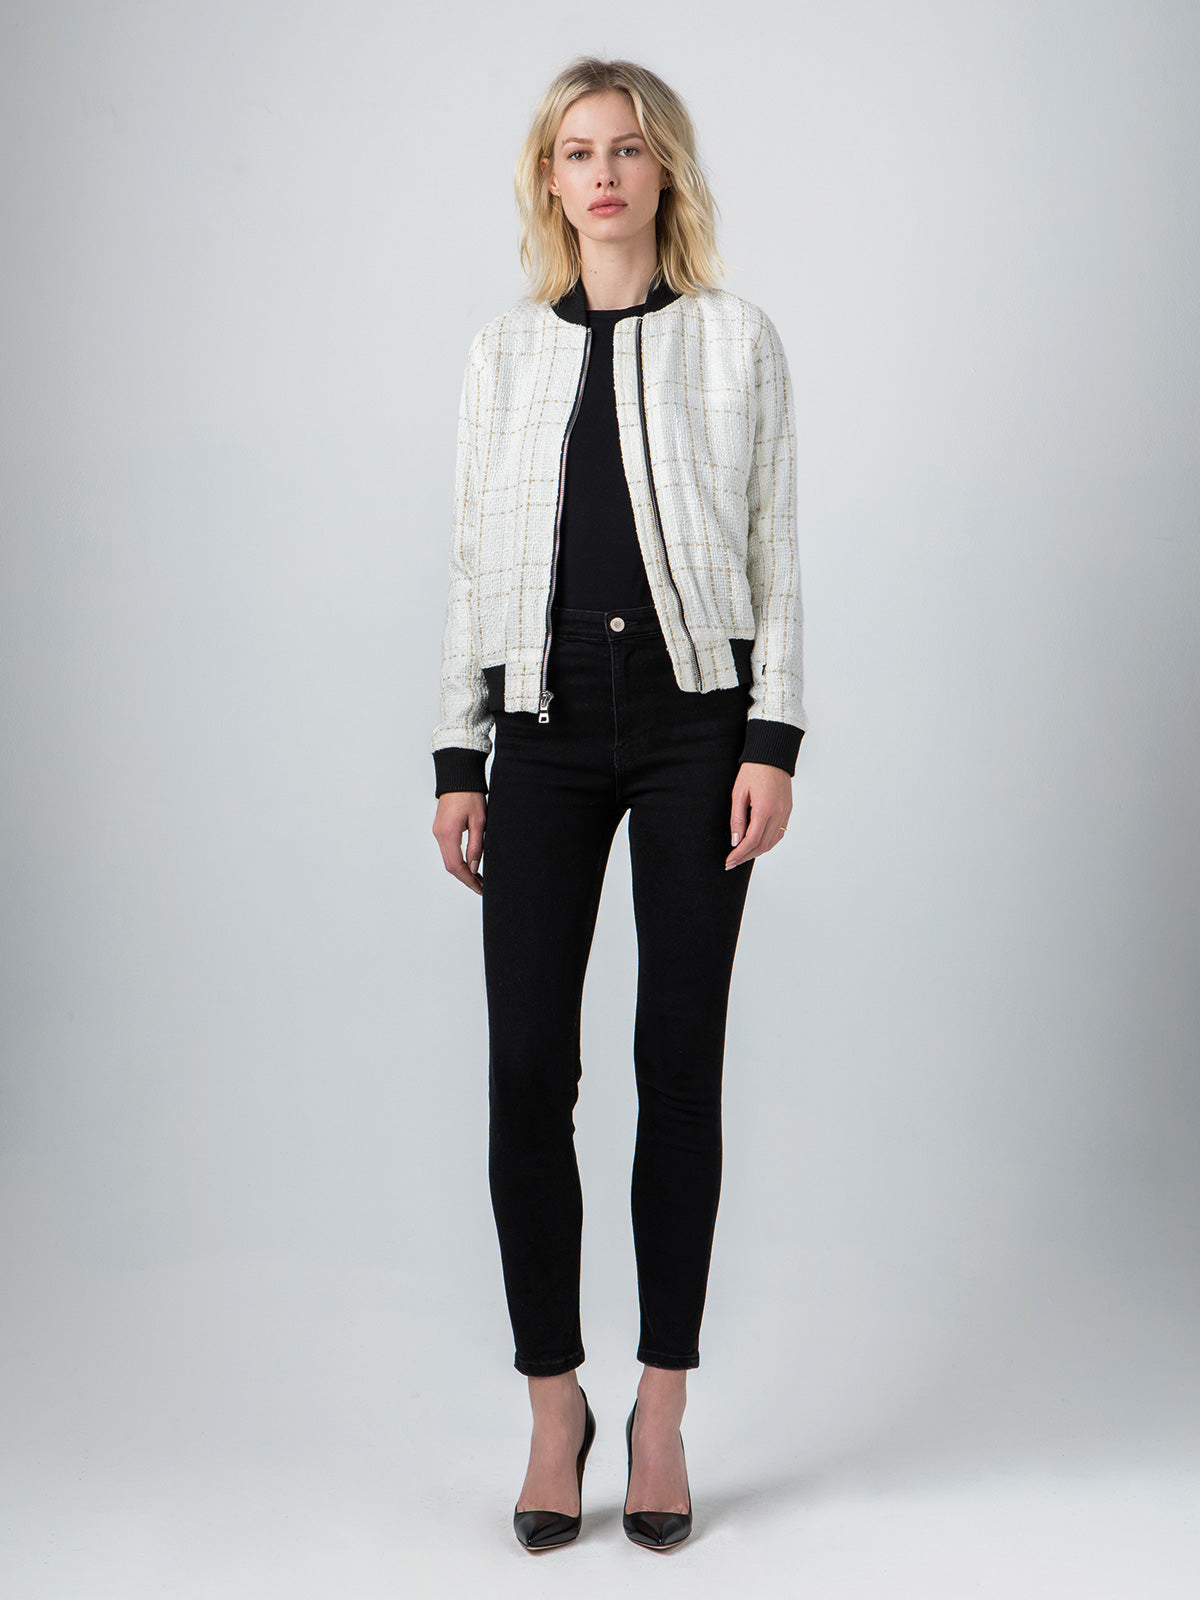 Vintage Chanel Bouclé Bomber | White & Metallic Gold Vintage Chanel Bouclé Bomber | White & Metallic Gold